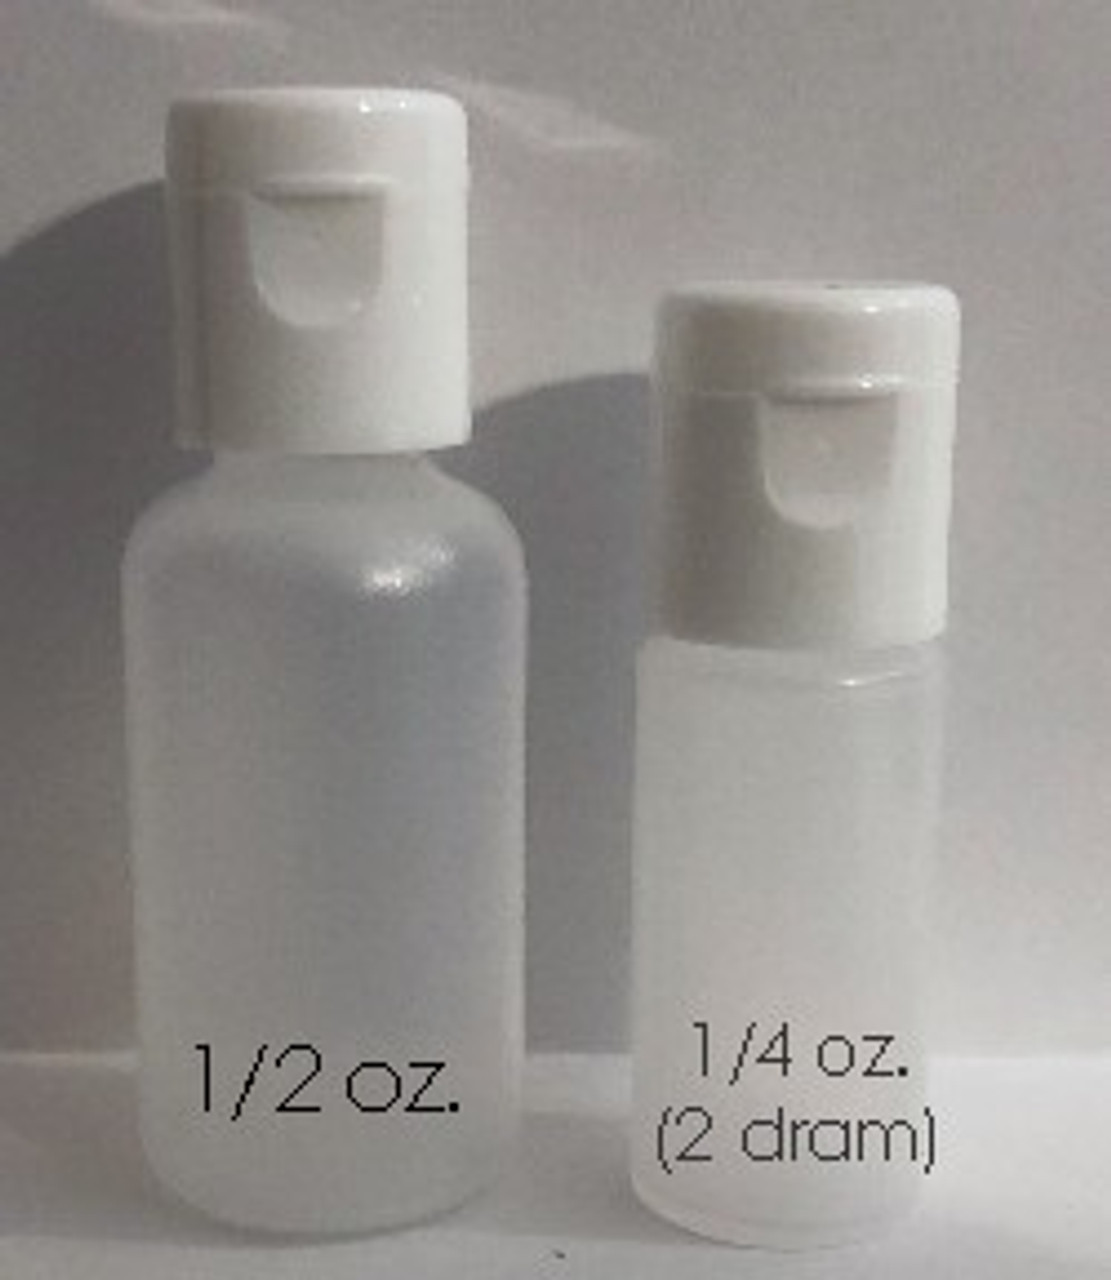 This set contains 1/2 ounce bottles of colors and mediums, and one 1/4 ounce bottle of Gloss Poly.   Compare to the Try Me Set which is bottled in 1/4 oz (2 dram) sized bottles.